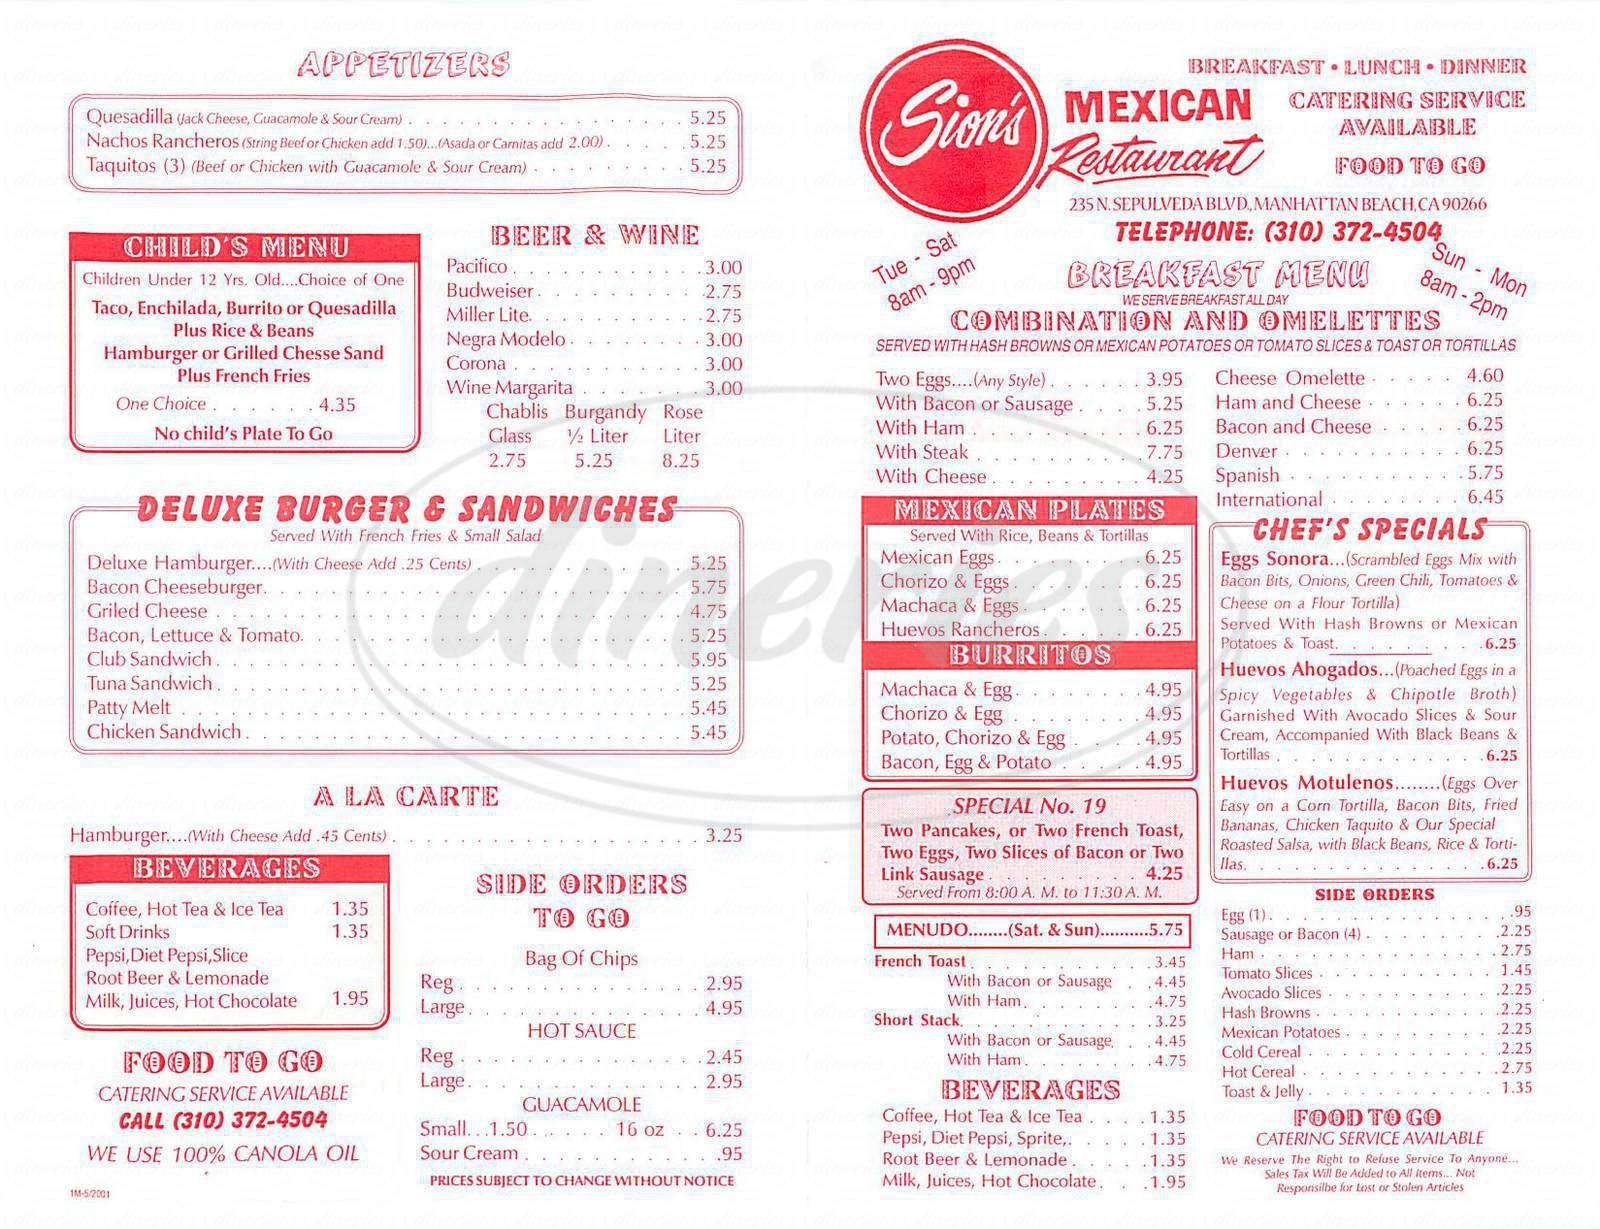 menu for Sions Mexican Restaurant